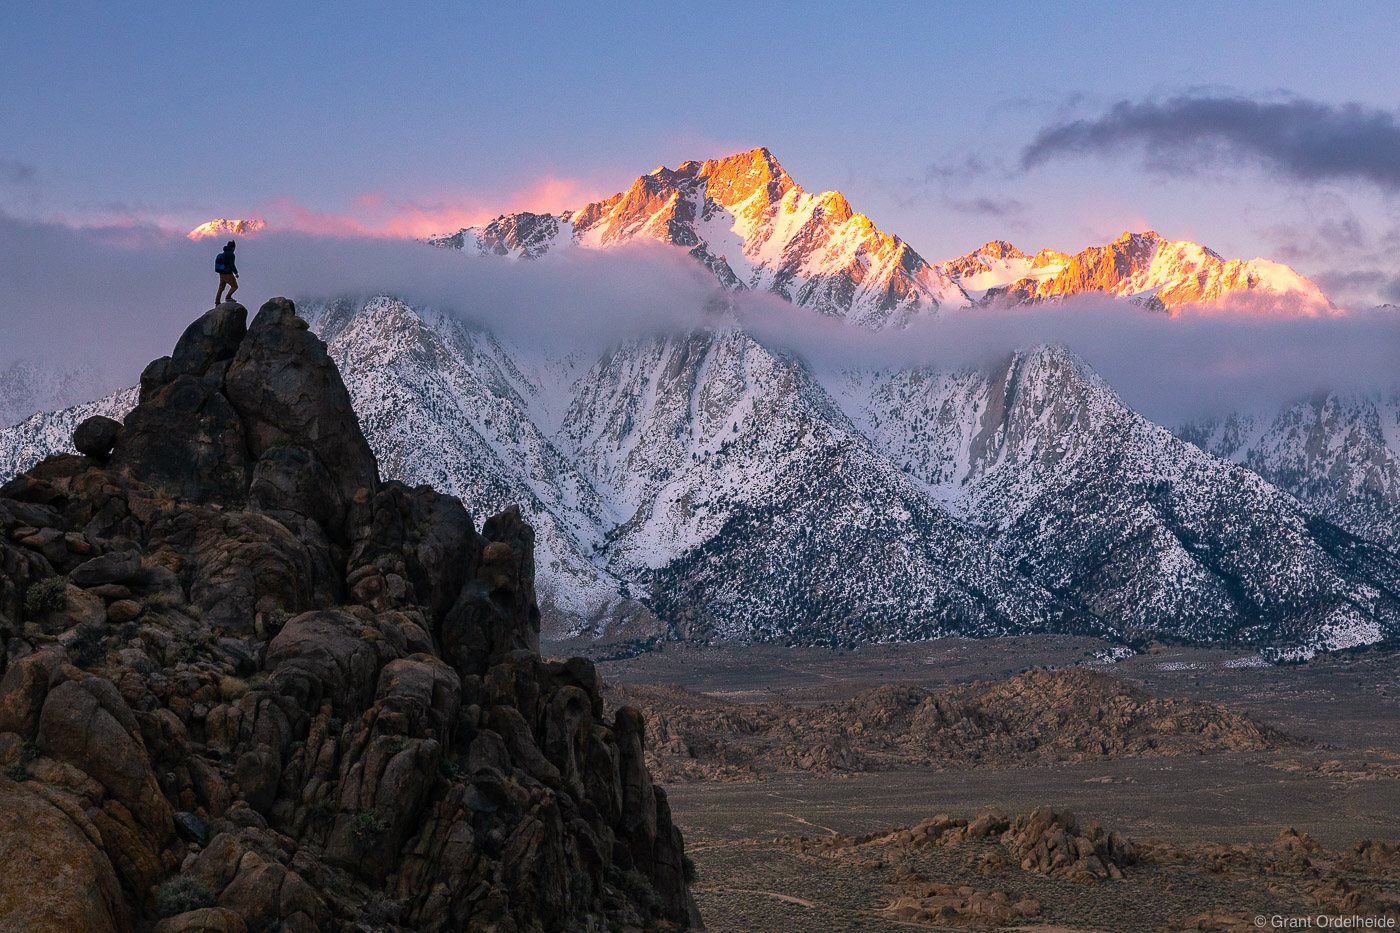 lone pine, peak, sunrise, california, person, rocks, alabama hills, , photo